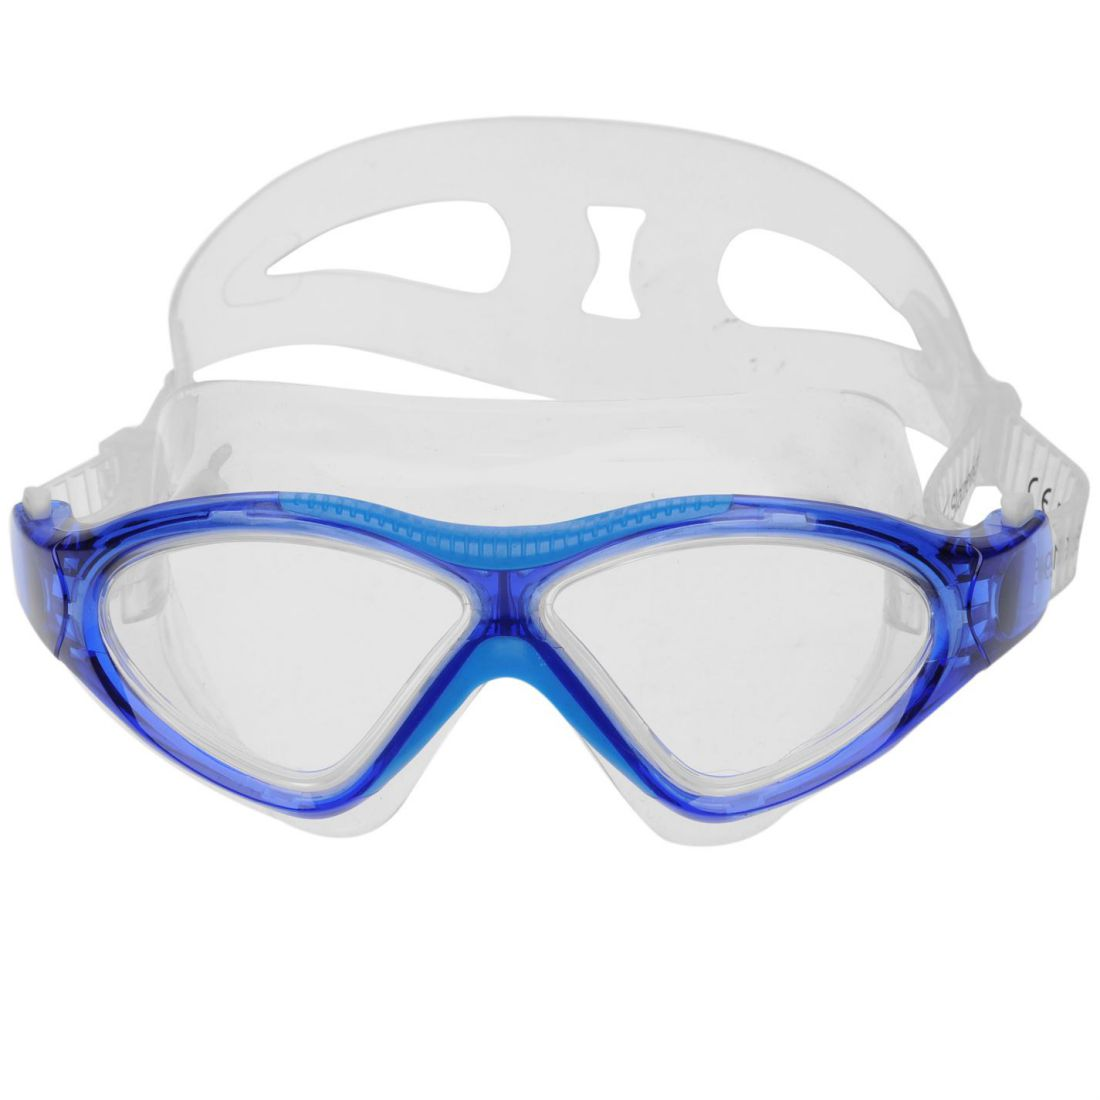 38be8c71026 Details about Slazenger Reef Mask Youngster Childrens Sport Activity Goggles  Silicone